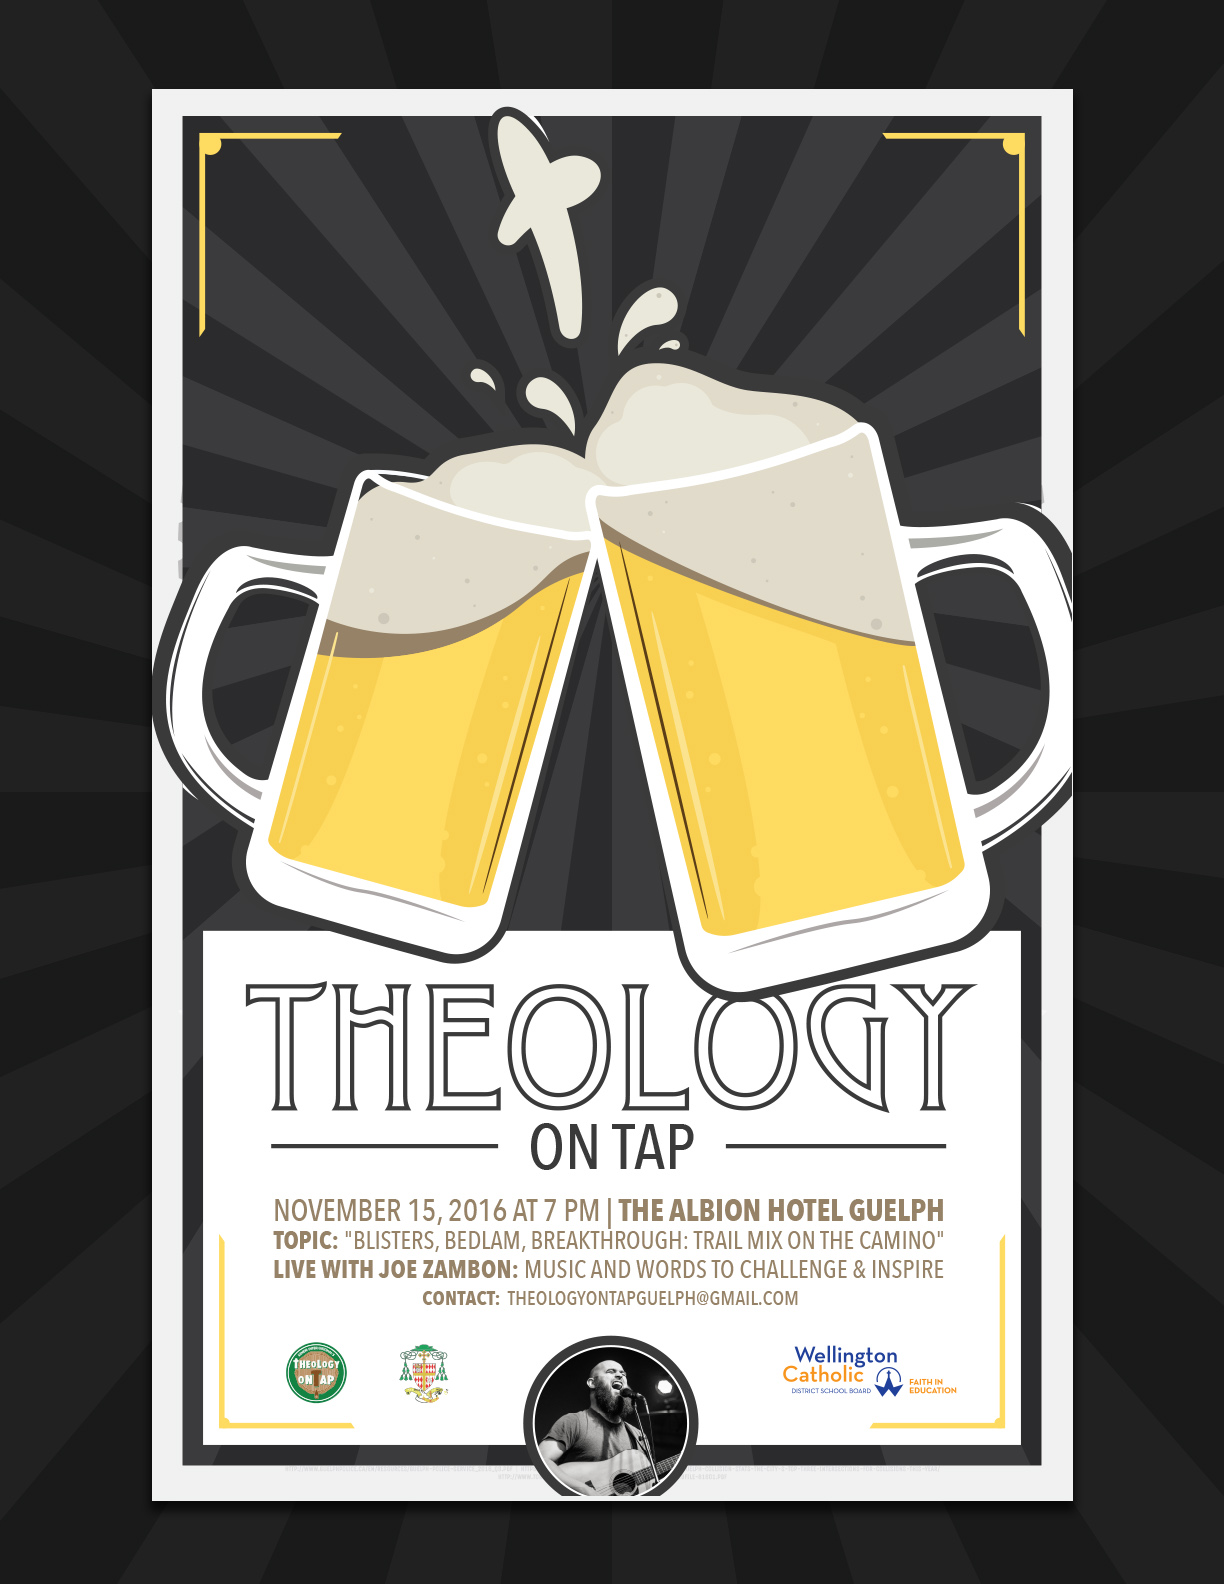 Guelph Theology on Tap poster design